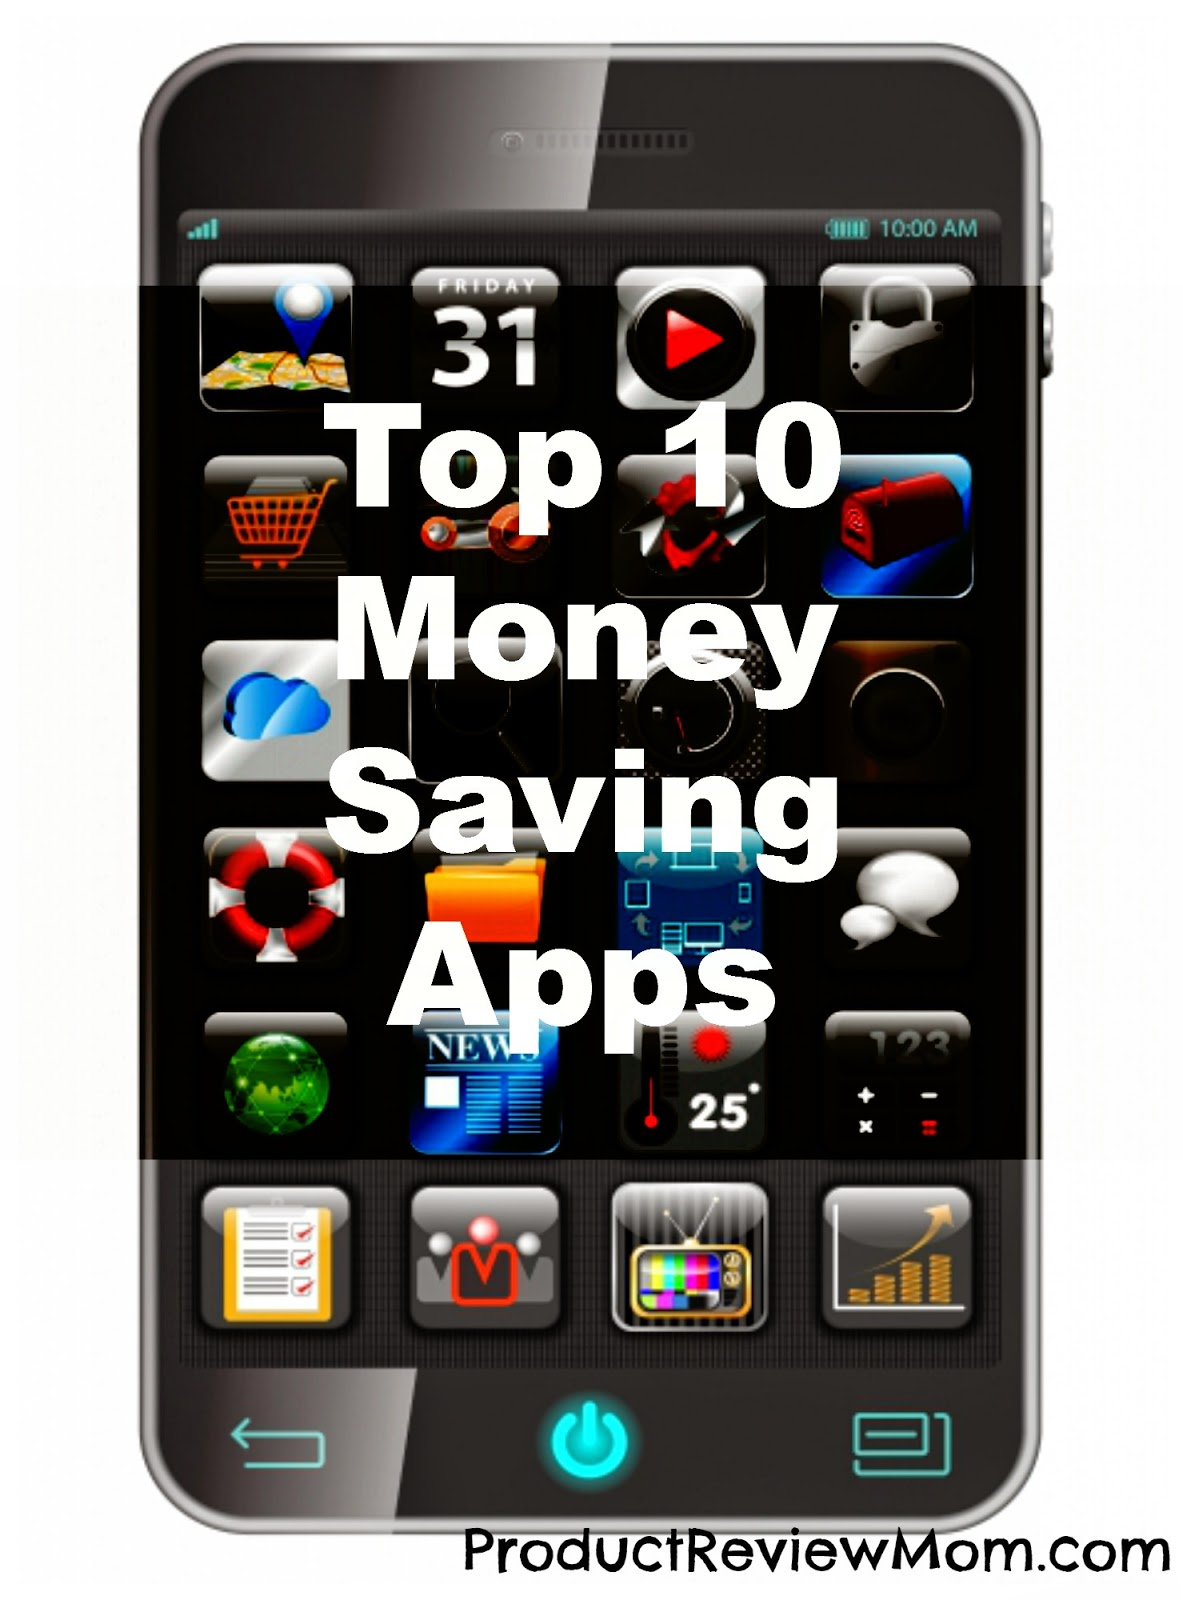 Top 10 Money Saving Apps #MoneySavingApps